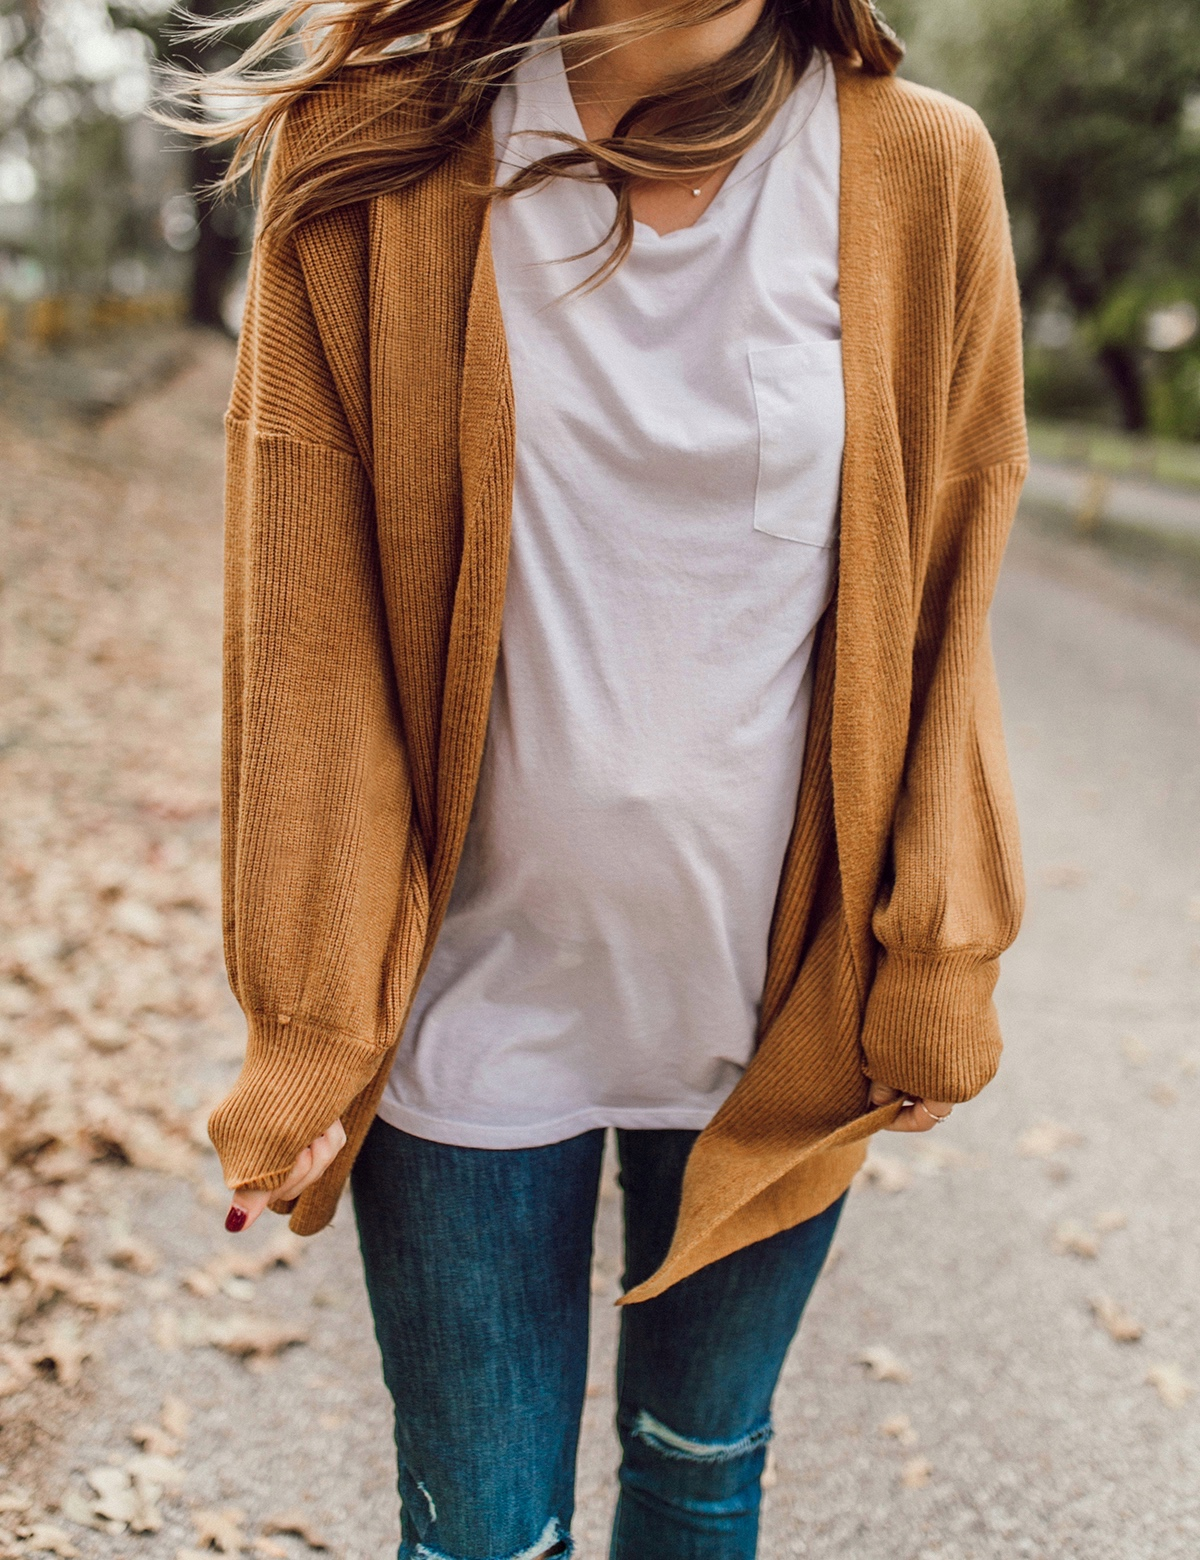 livvyland-blog-olivia-watson-austin-texas-fashion-lifestyle-blogger-mustard-cardigan-outfit-madewell-regan-boots-cyber-monday-nordstrom-sale-8